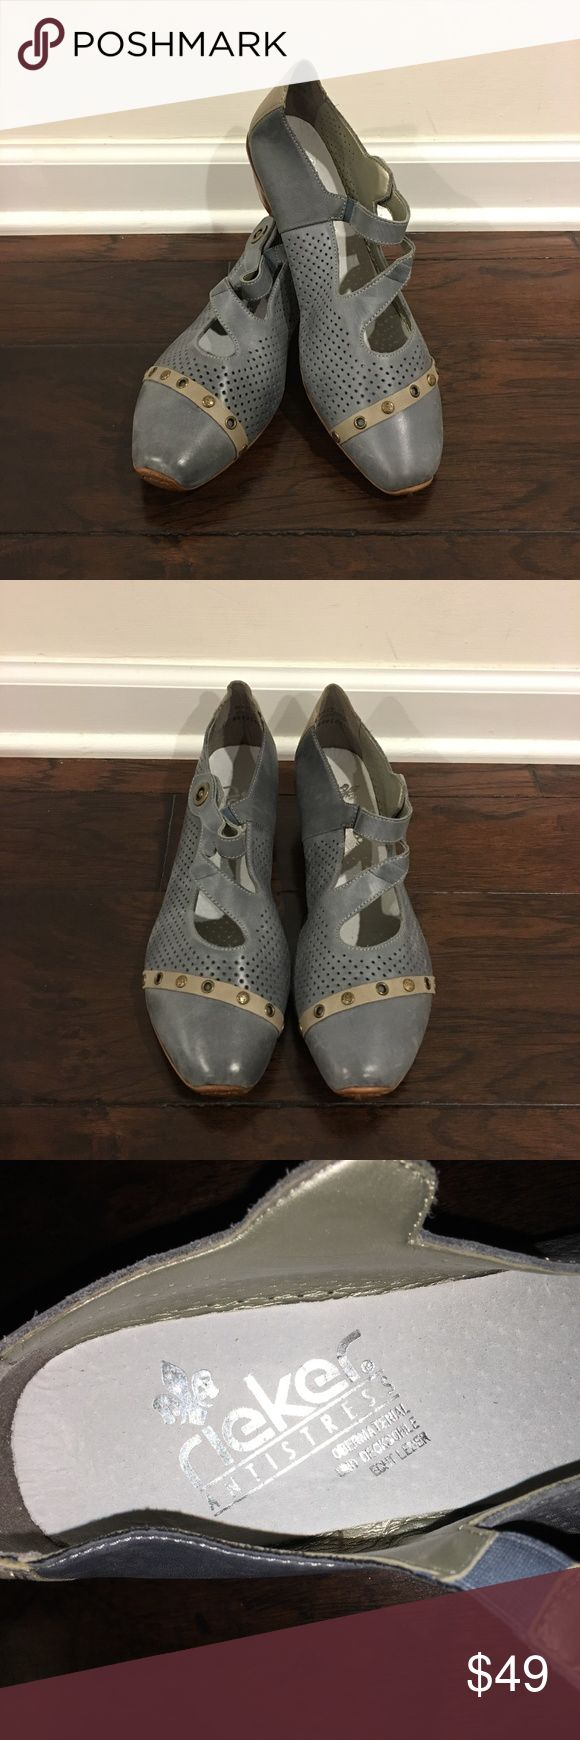 NWOB- Rieker Antistress Women's Leather Shoes - 8 NWOB- Rieker Antistress Women's Leather Shoes - Size 8 New Without Box Style: Comfort Color: Bleu-Gray Rieker Shoes #RiekerShoes